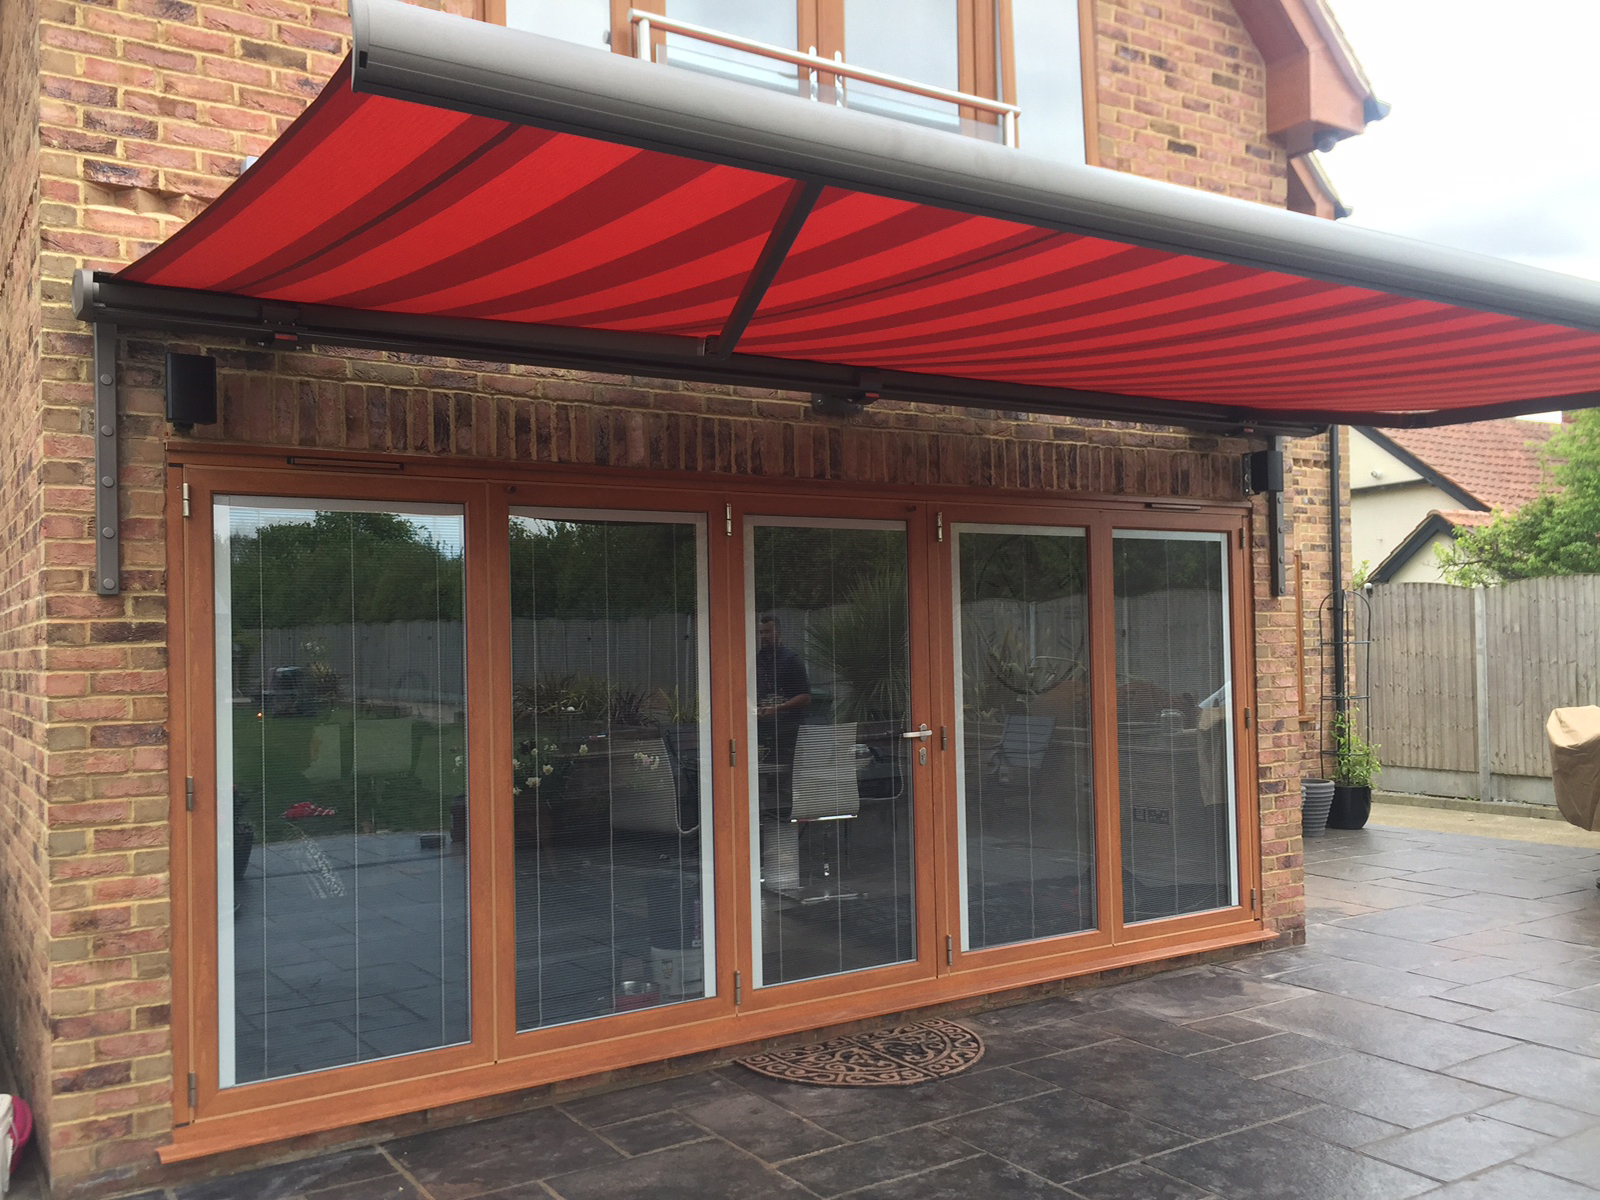 Markilux Full Cassette Awnings Are The Best Choice If You Need Maximum  Protection For Your Awning, Like The Markilux 6000. With Its Three Design  Variations ...